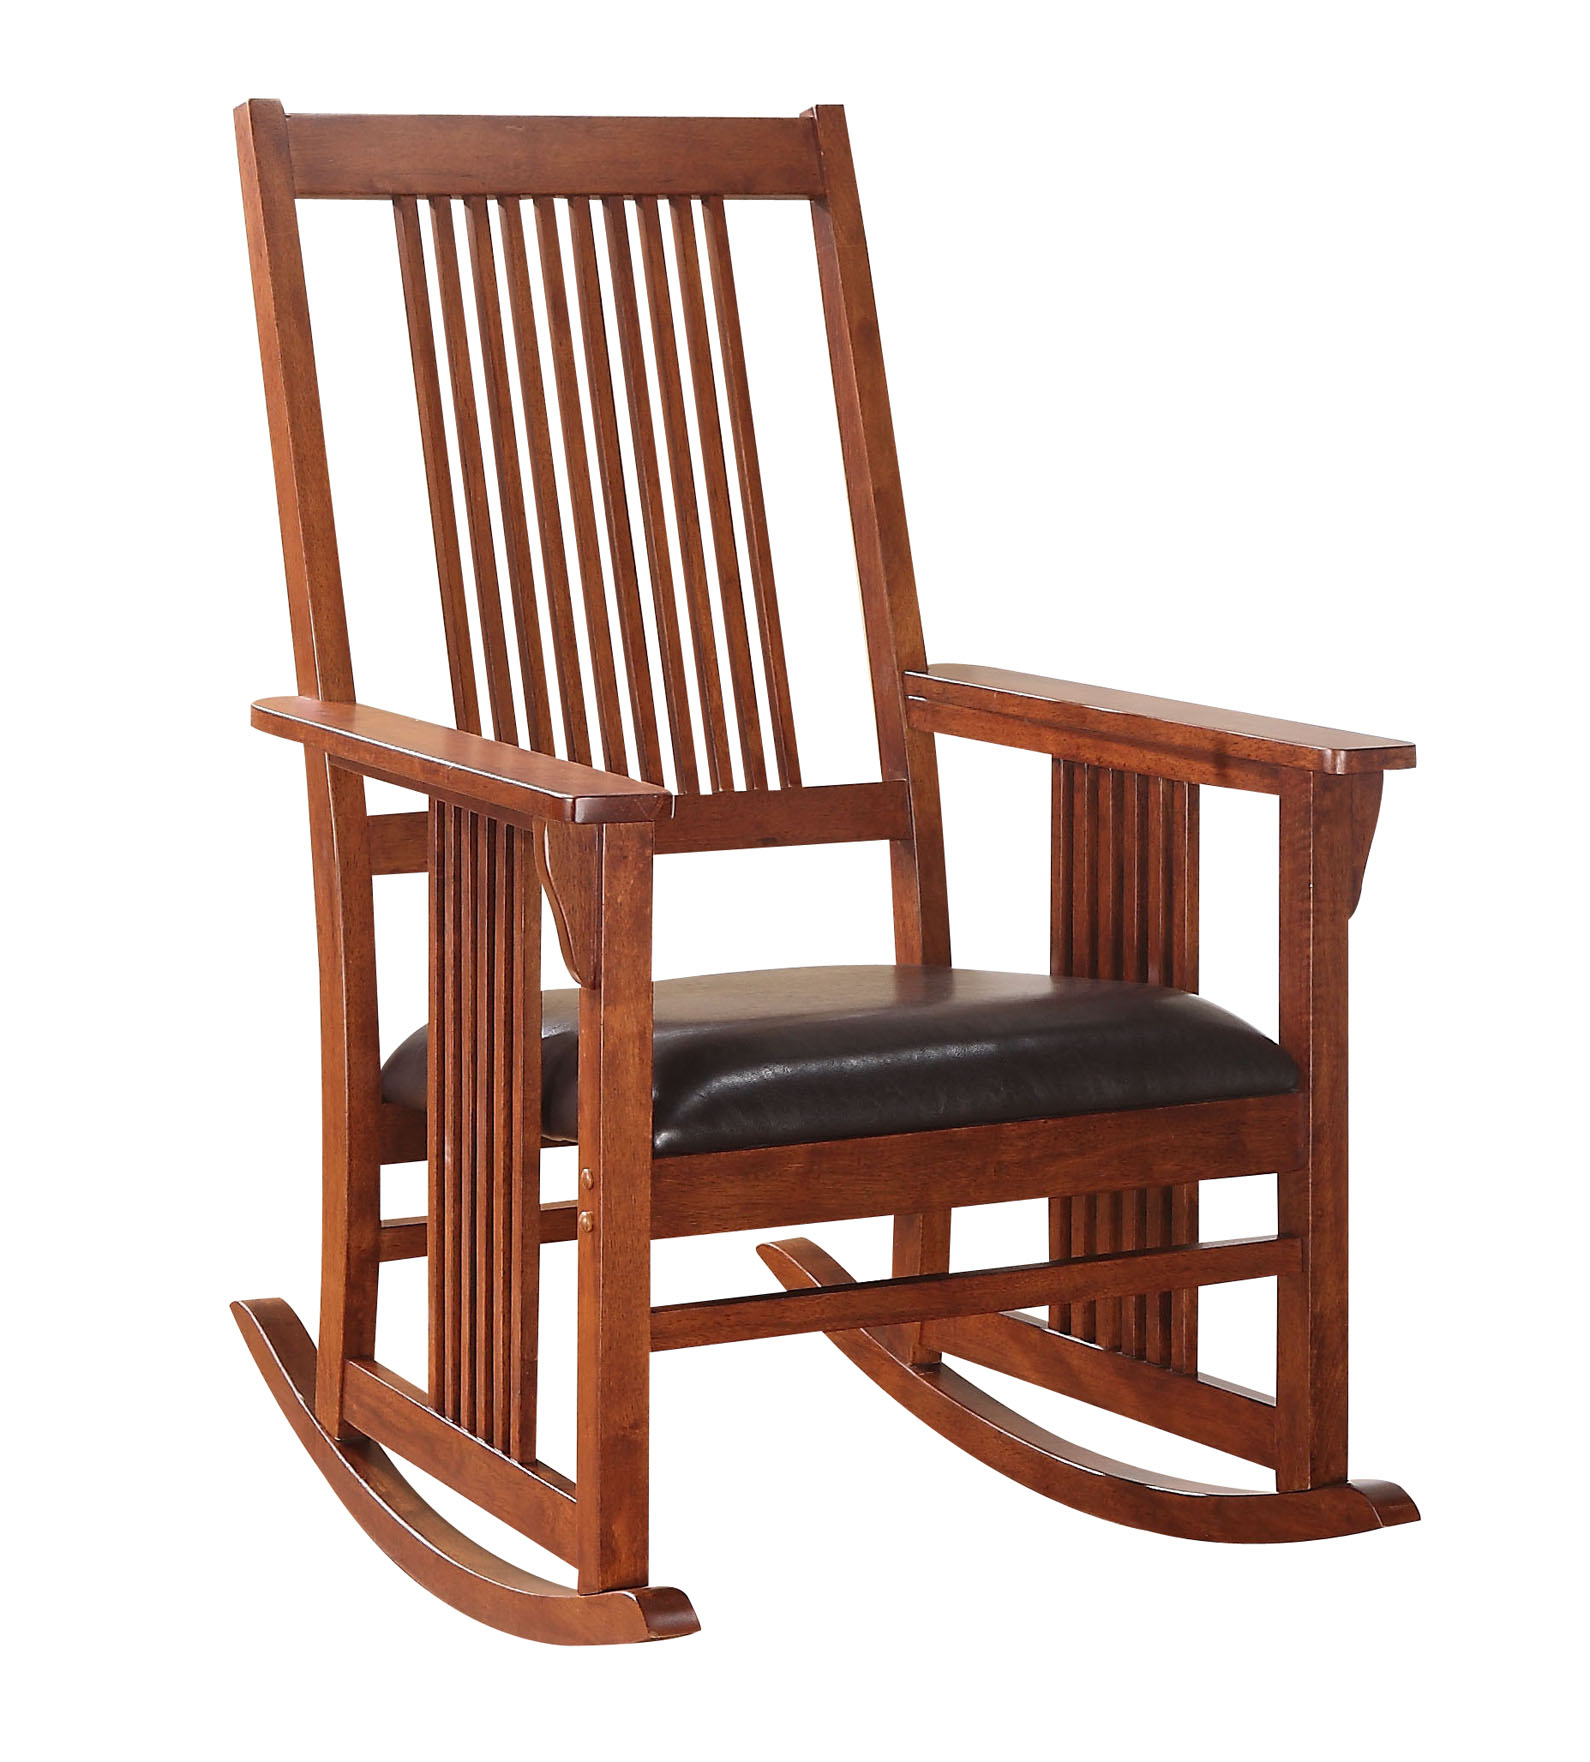 ACME Kaelan Rocking Chair, Tobacco by ACME Furniture